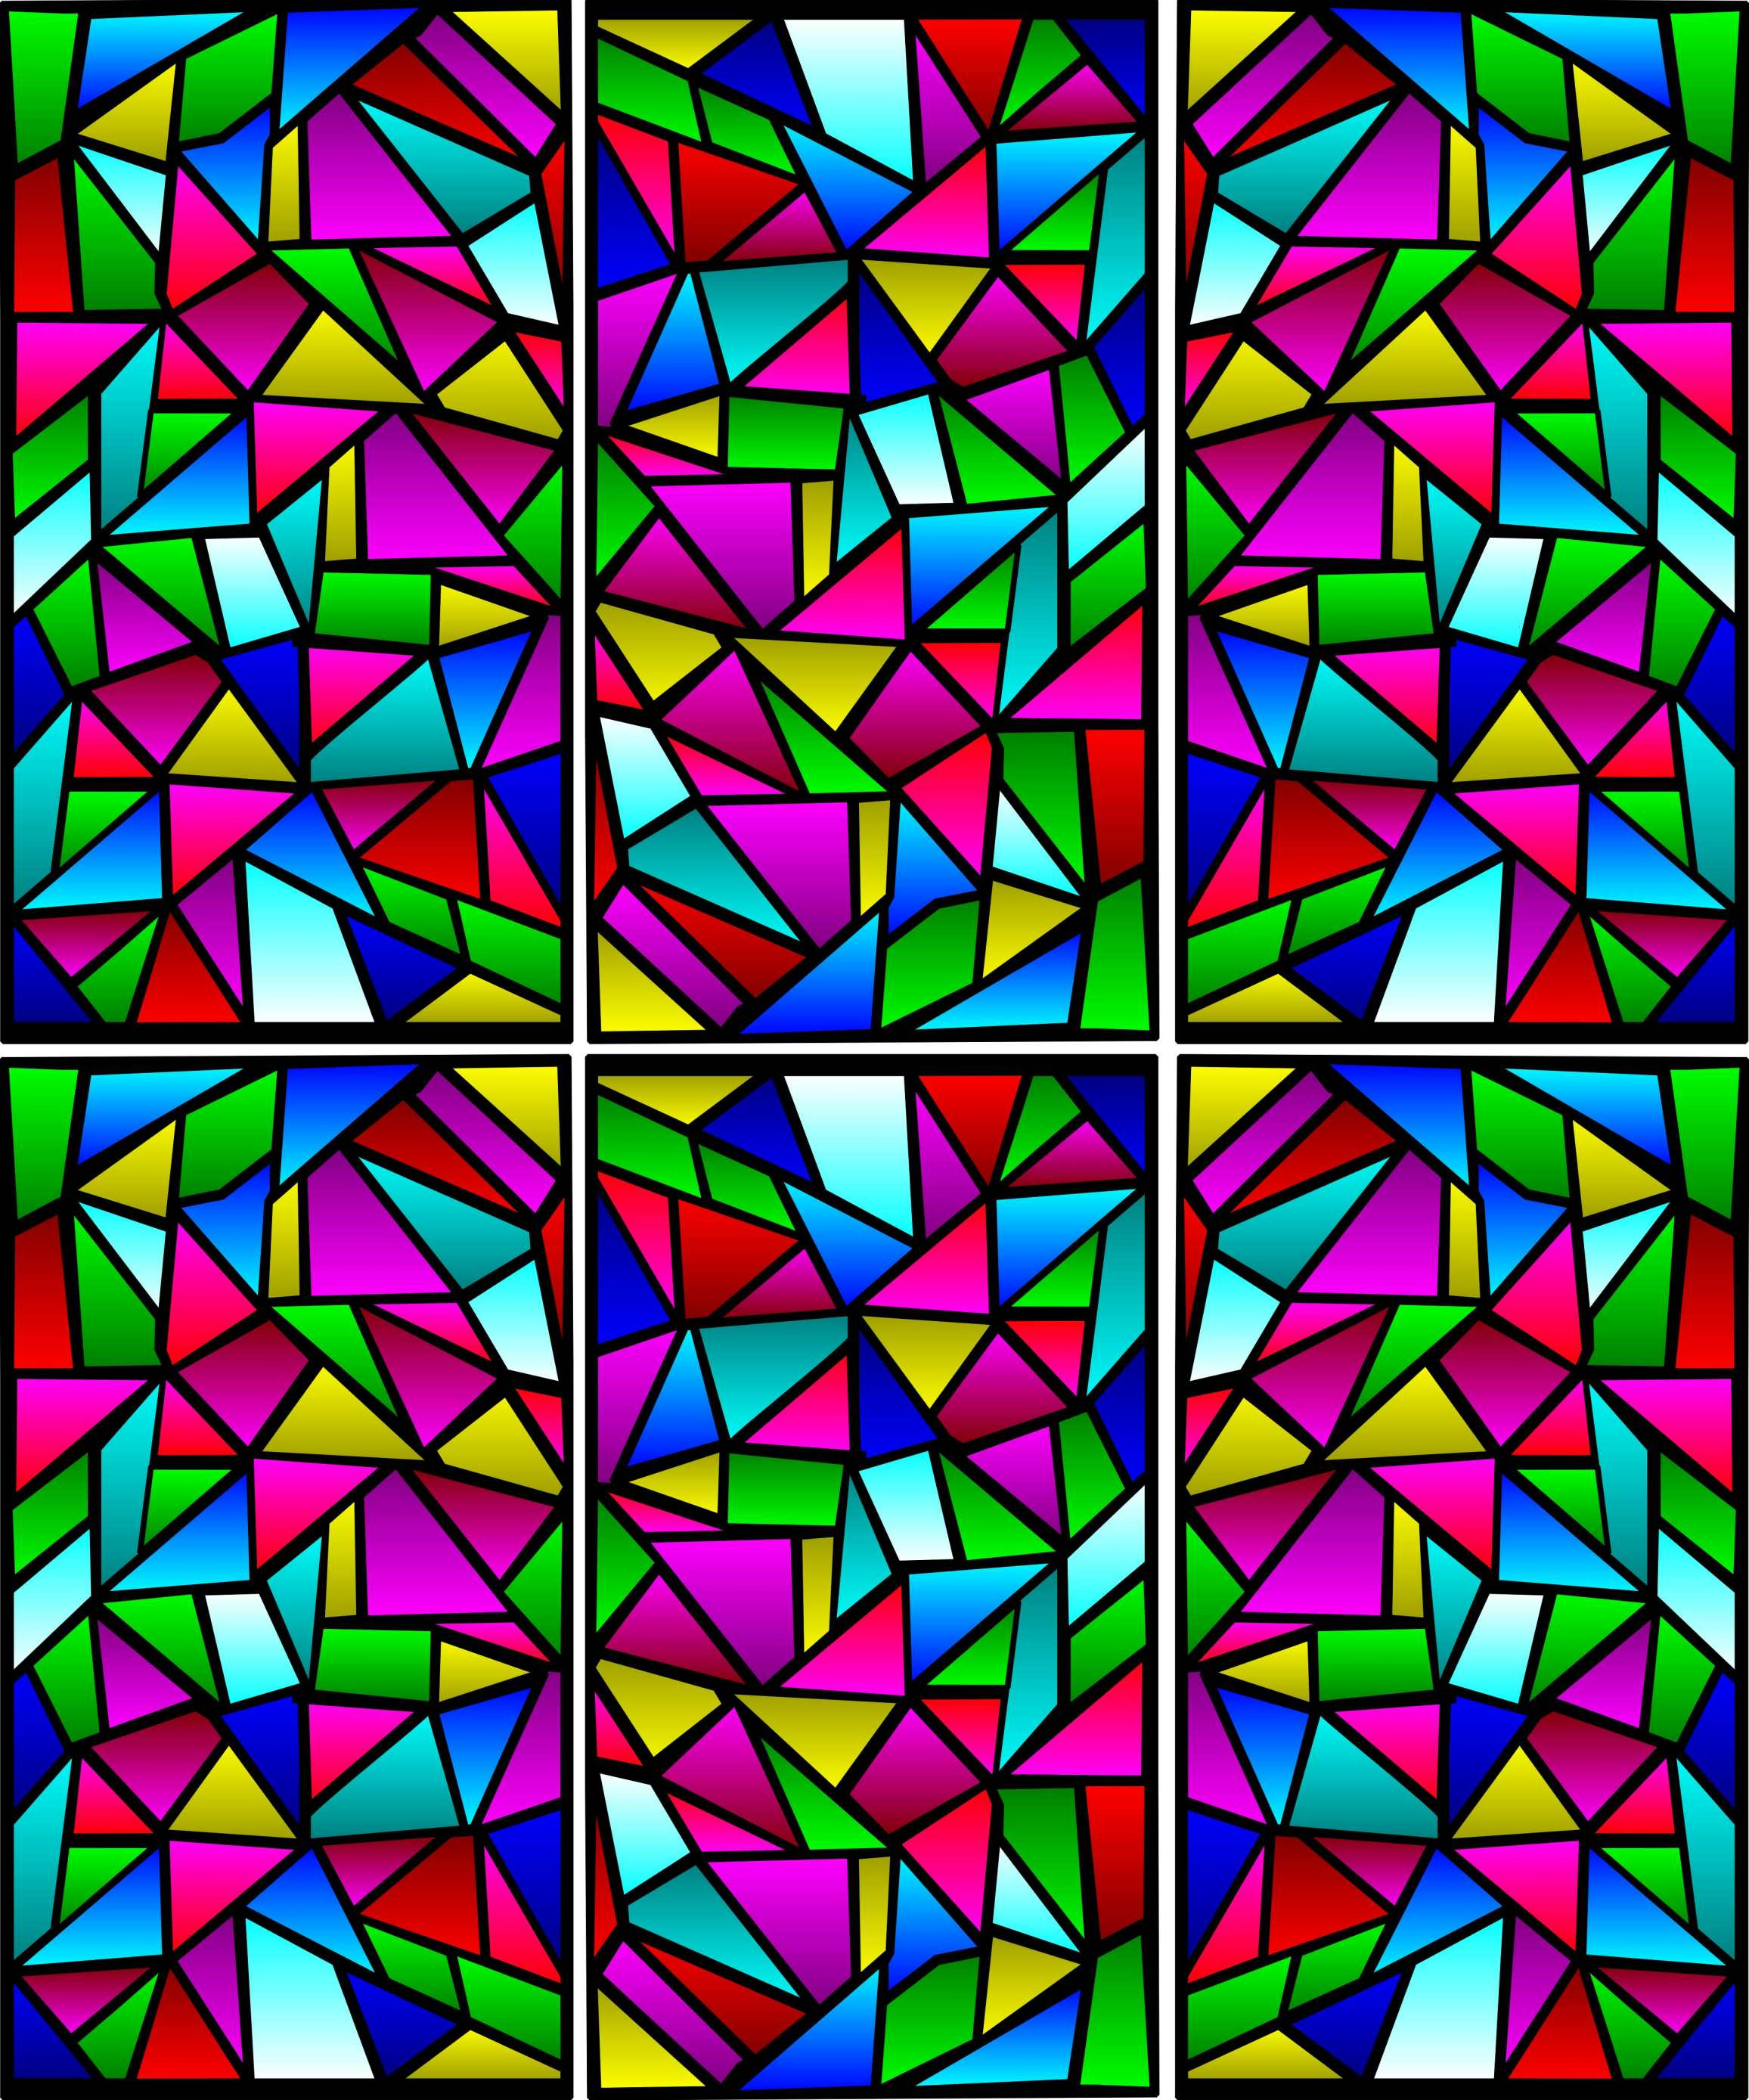 Clip Art Church Stained Glass ... Resour-Clip Art Church Stained Glass ... Resources For Big Indoor .-0